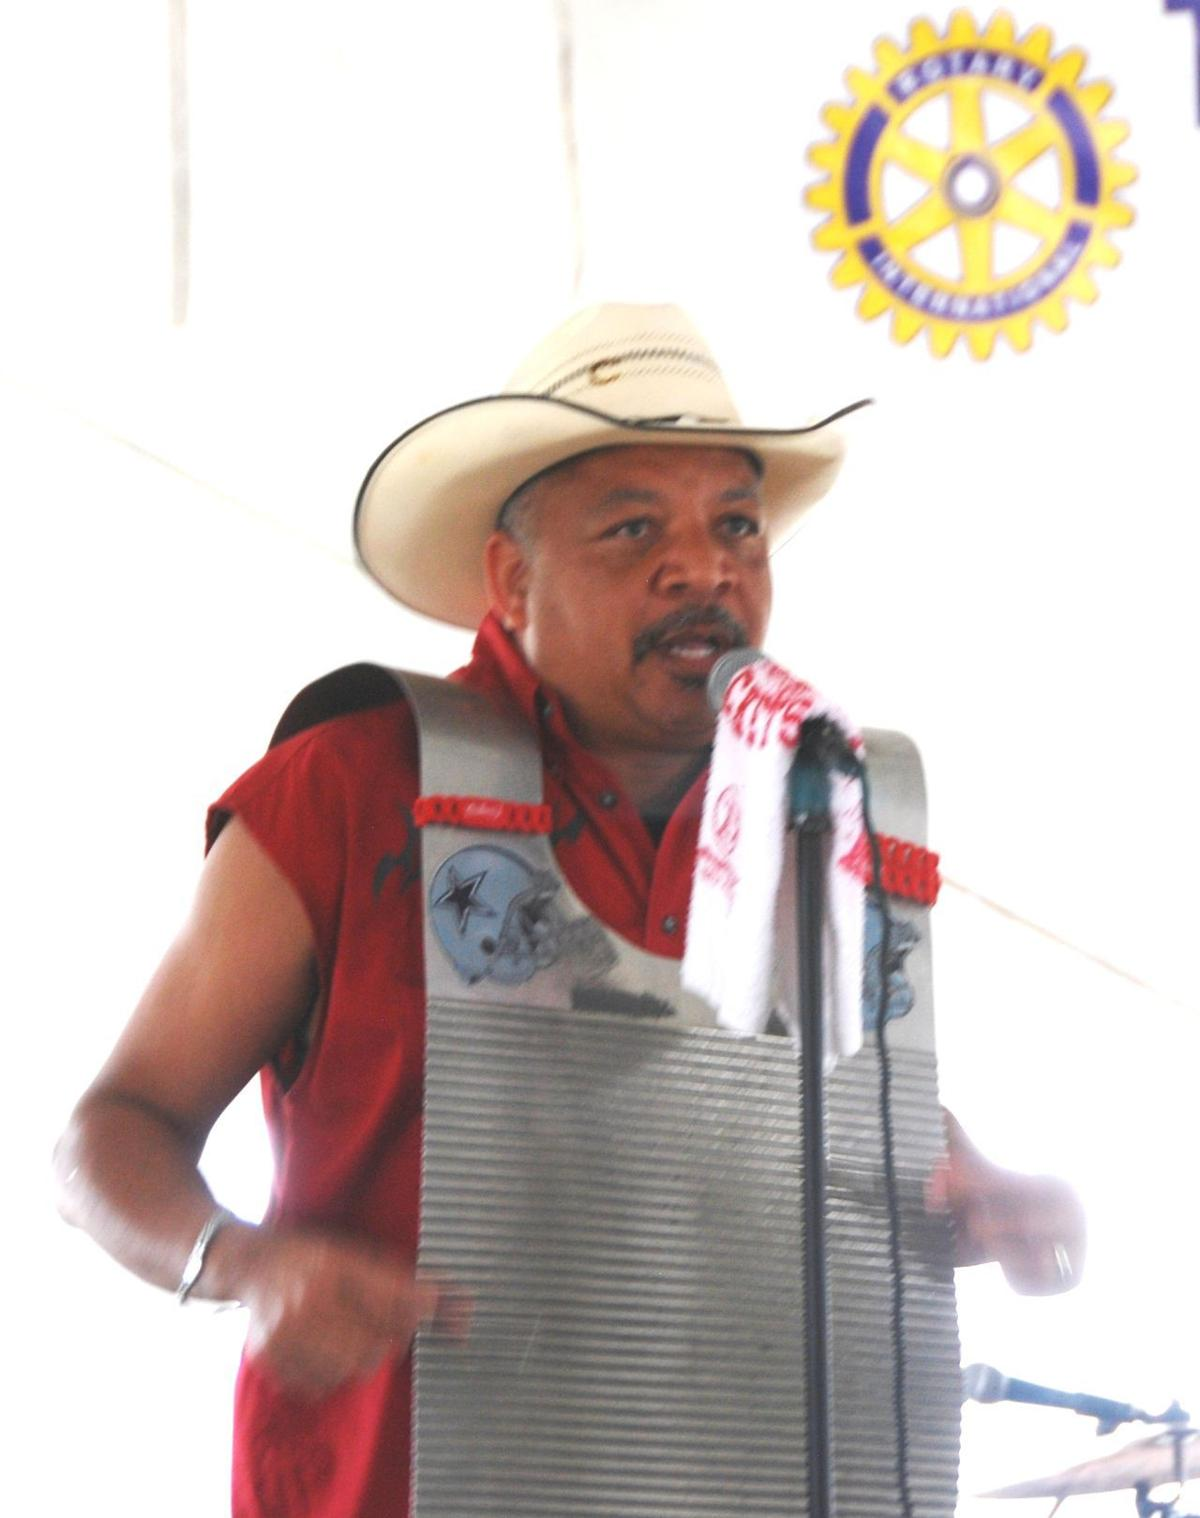 Zydeco band set to perform at festival